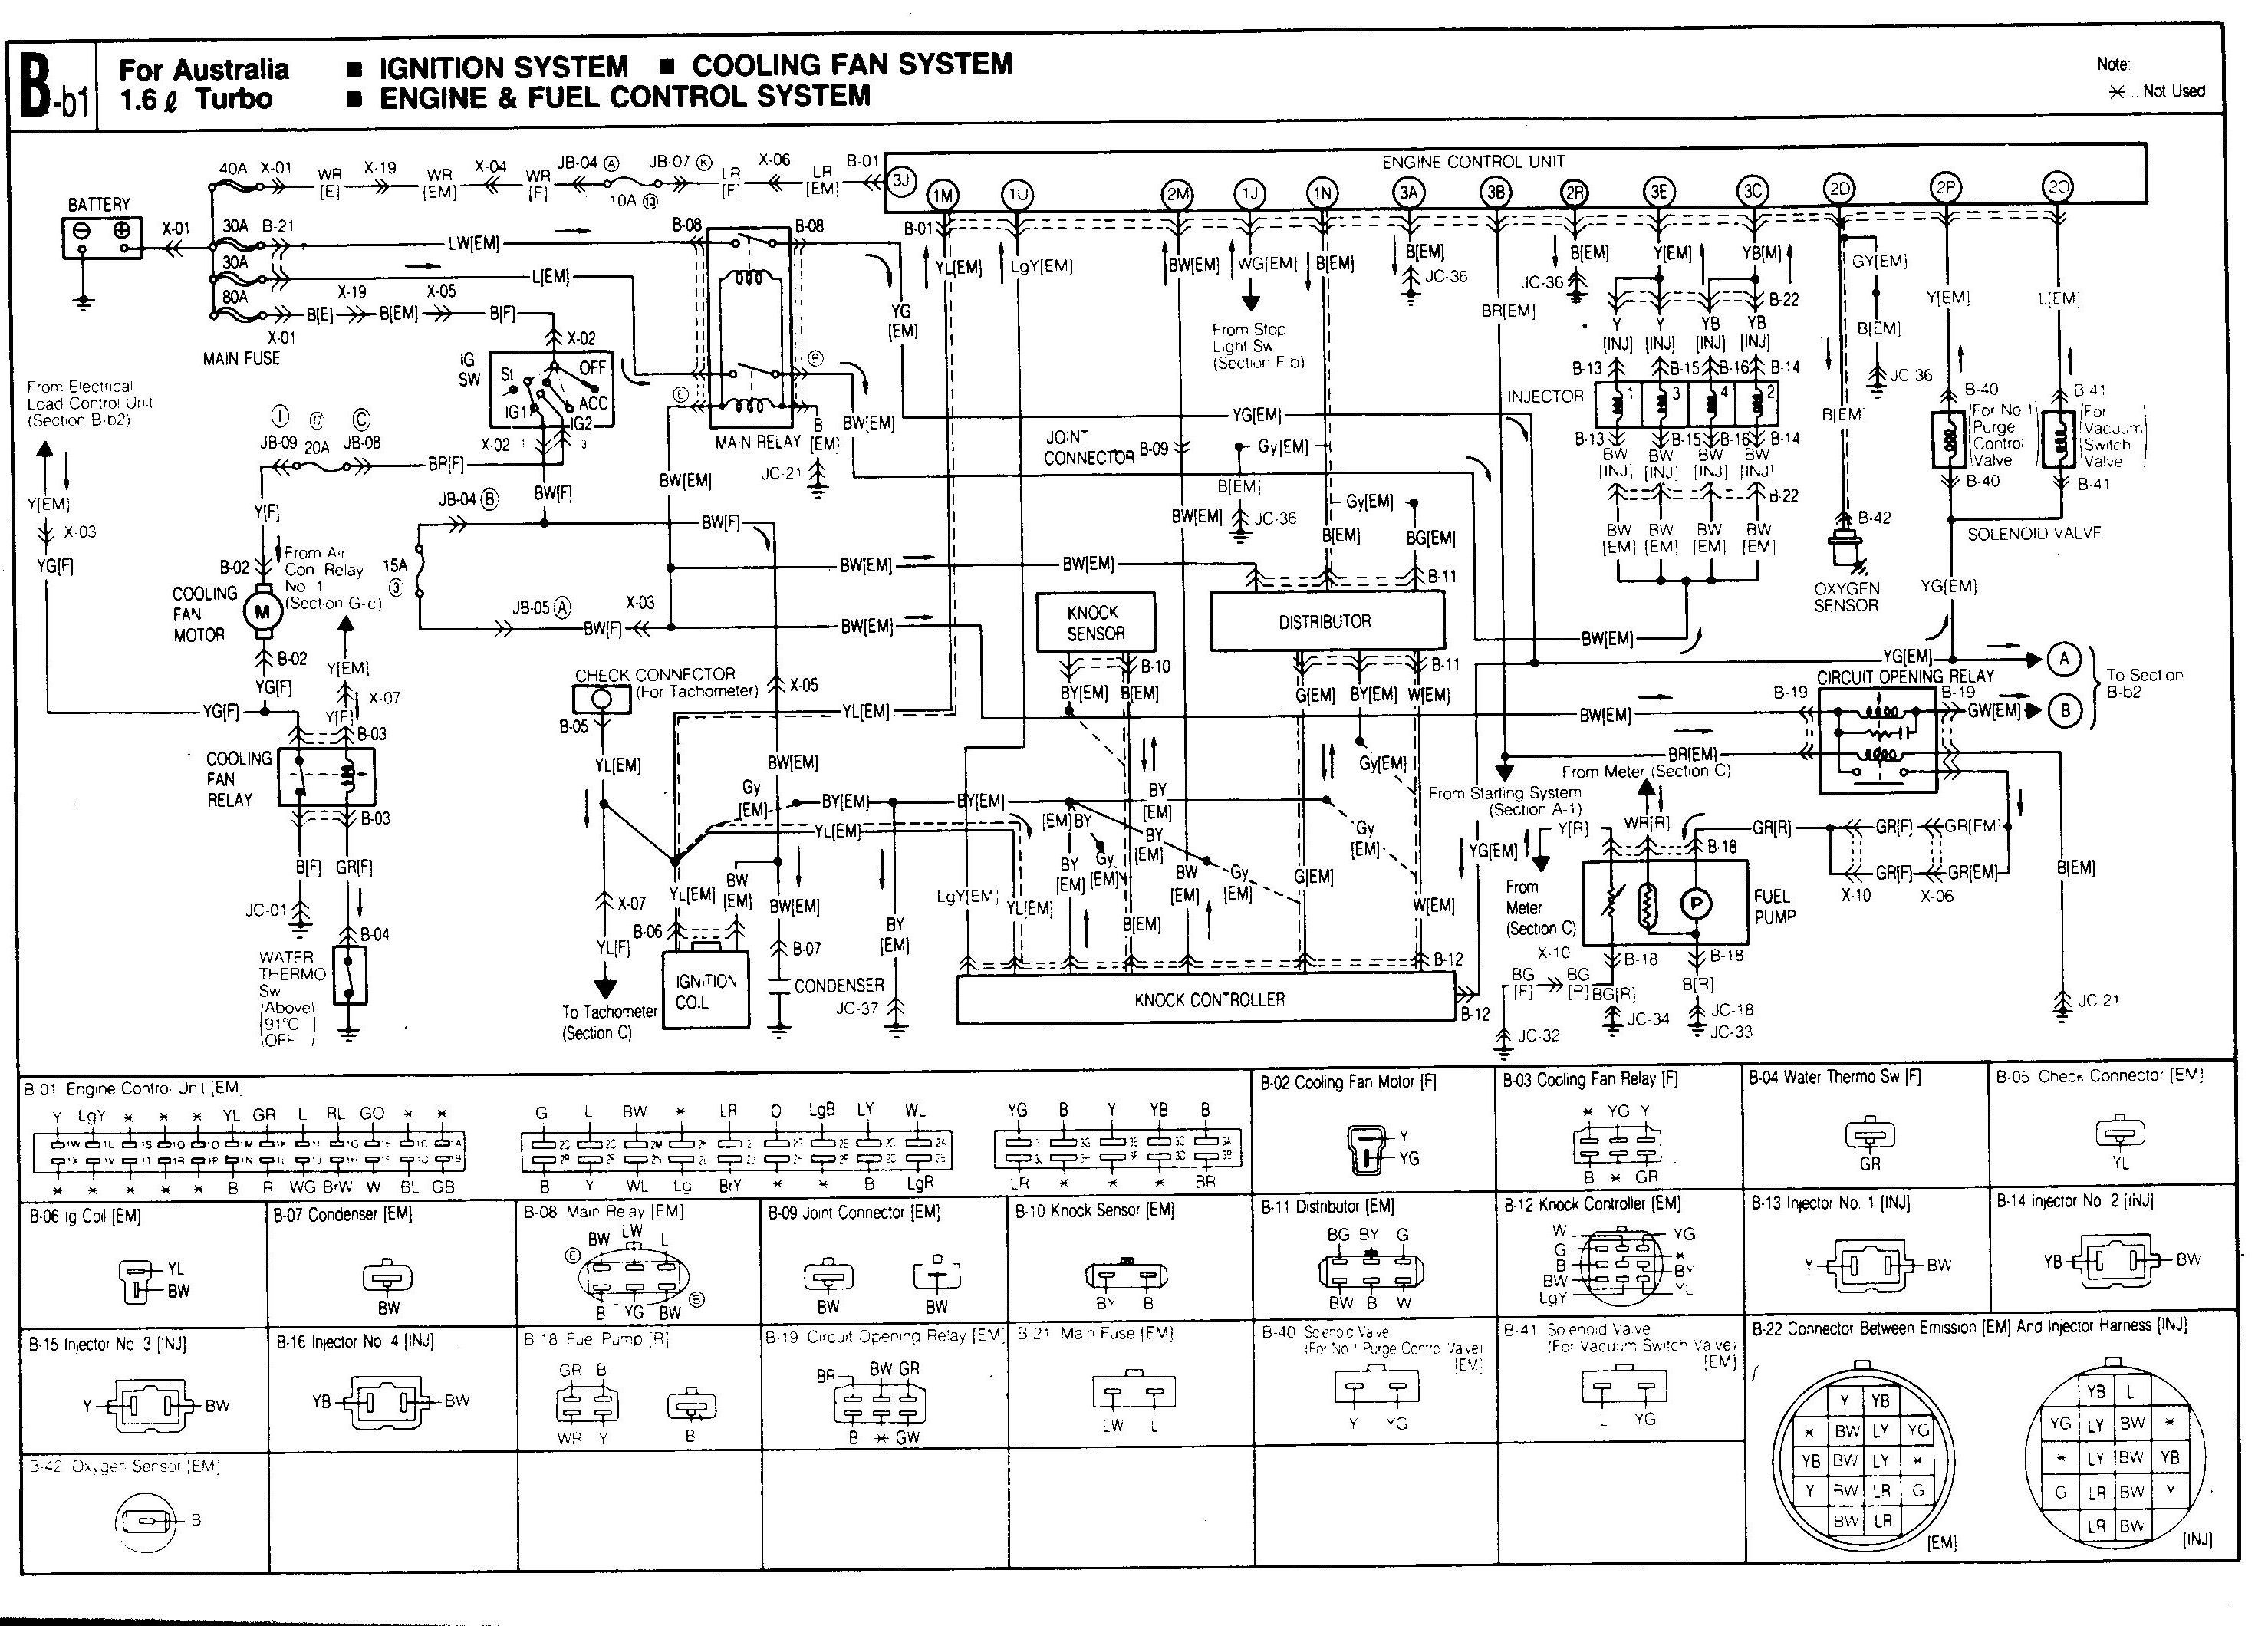 2007 Kia Optima Engine Diagram Wiring Diagram Kia Bongo Wire Data Schema • Of 2007 Kia Optima Engine Diagram Dodge Caravan Tail Light Wiring Diagram Unique 2007 Dodge Ram 1500